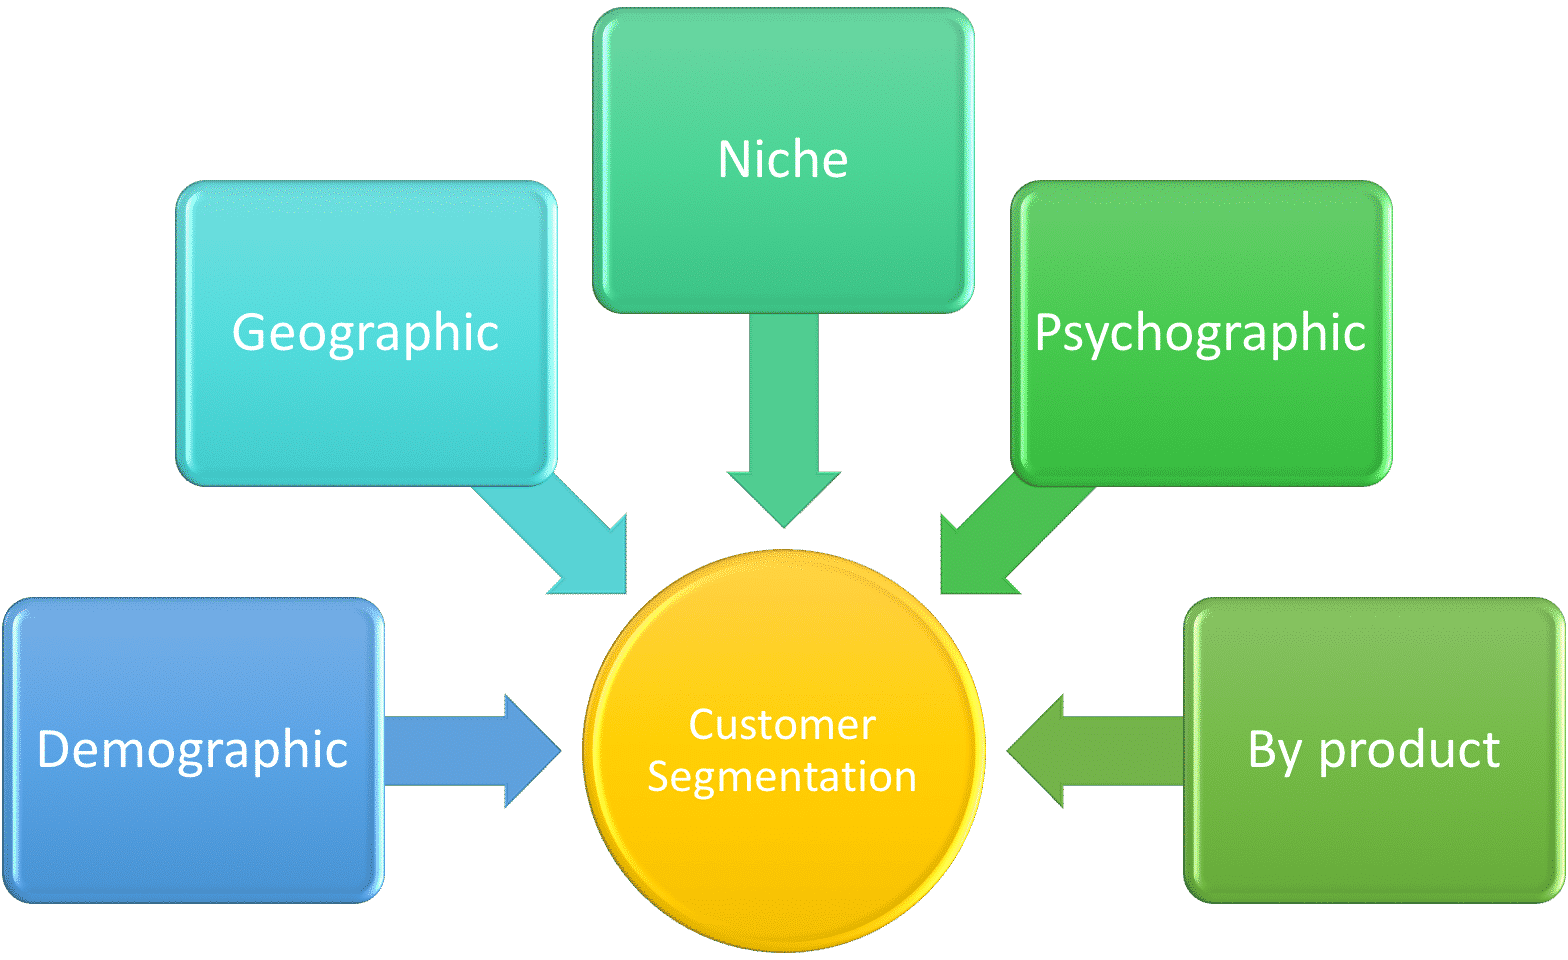 Customer segmentation groups